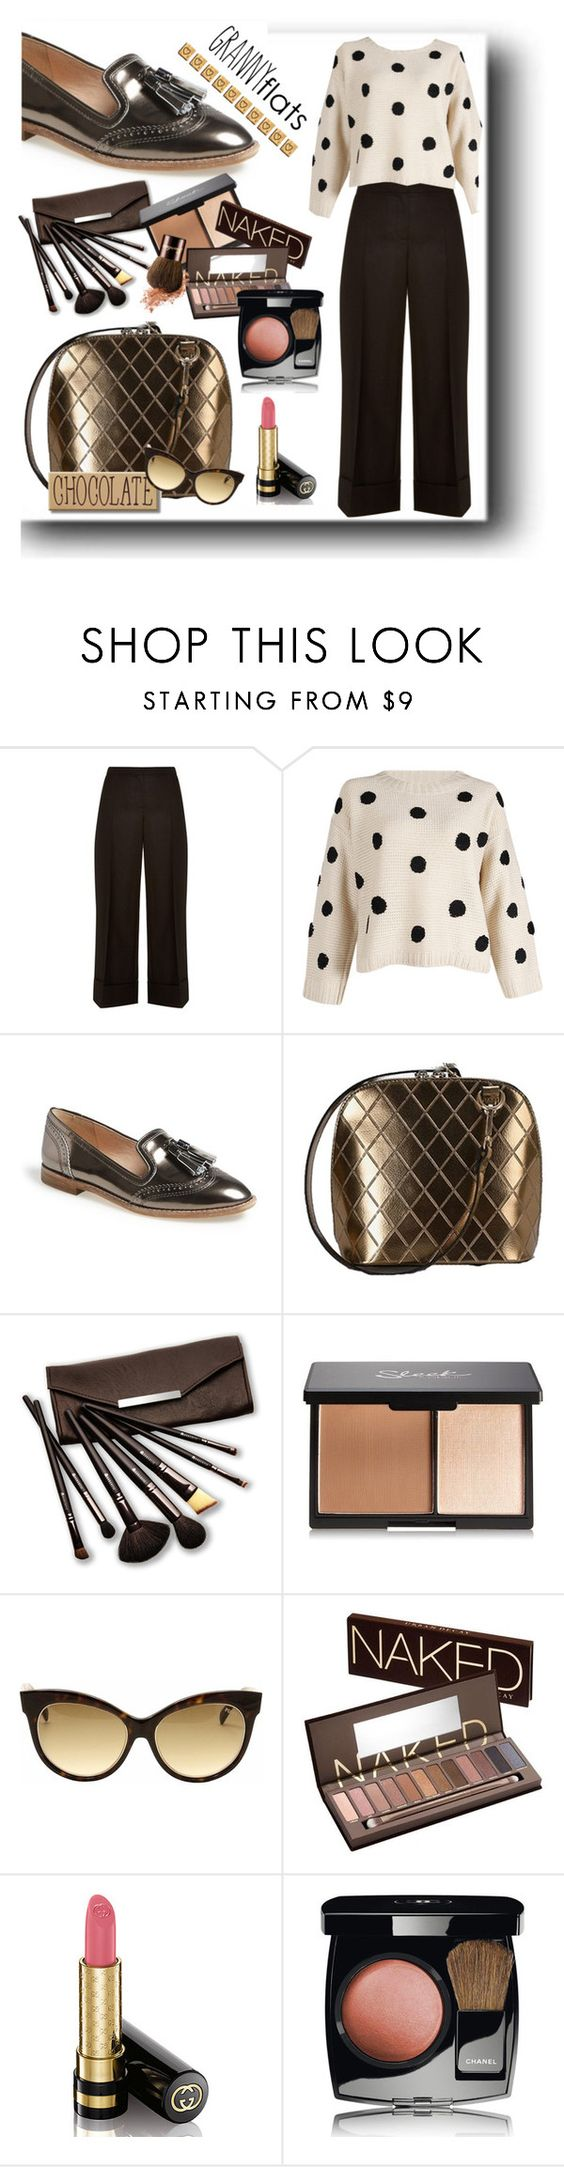 """Cute Trend: Granny Flats"" by jesslea85 ❤ liked on Polyvore featuring The Row, Louise et Cie, Borghese, Emilio Pucci, Urban Decay, Gucci, Chanel, women's clothing, women's fashion and women"